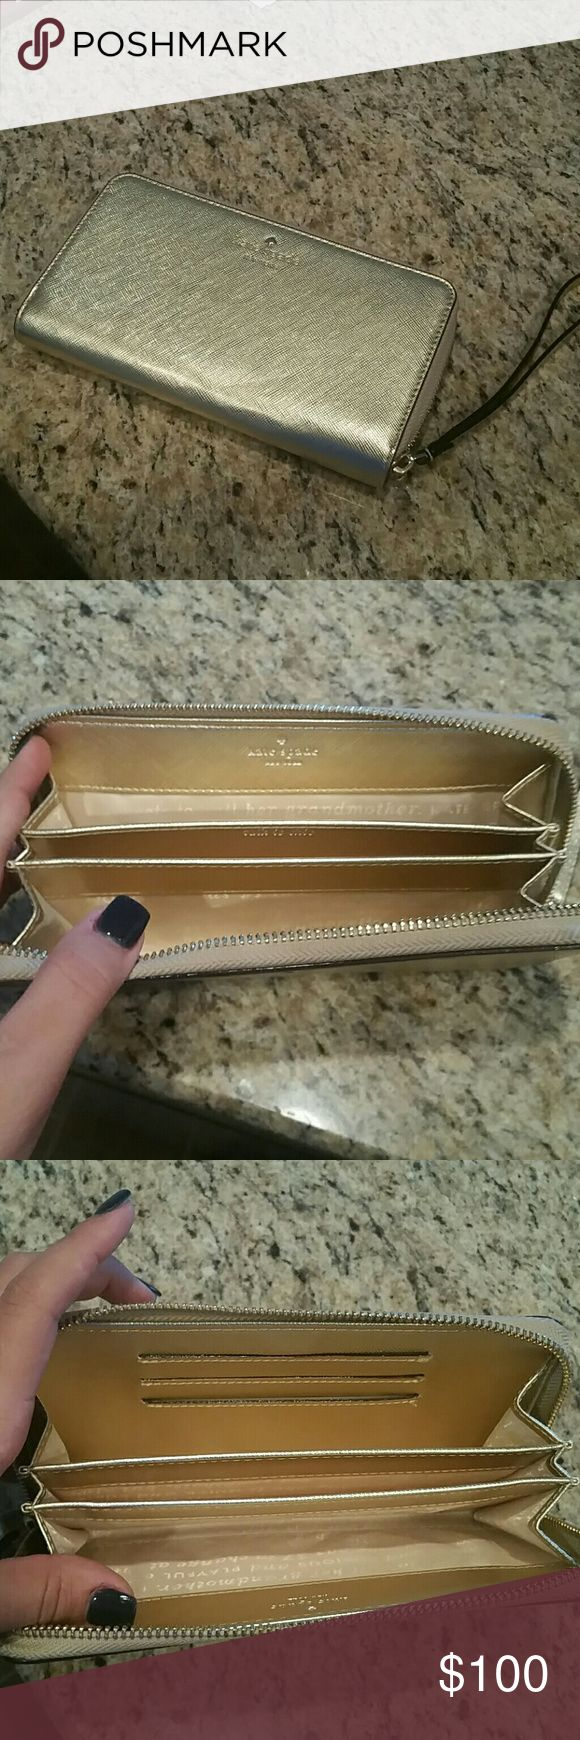 New Kate Spade Gold Wristlet New with tags Kate Spade gold wristlet . It can fit iPhone 7 size phone or Galaxy Note size phone.  two separate compartments for extra items. It  also has the three card holders to hold debit card driver's license or credit cards and excellent condition used only once kate spade Other